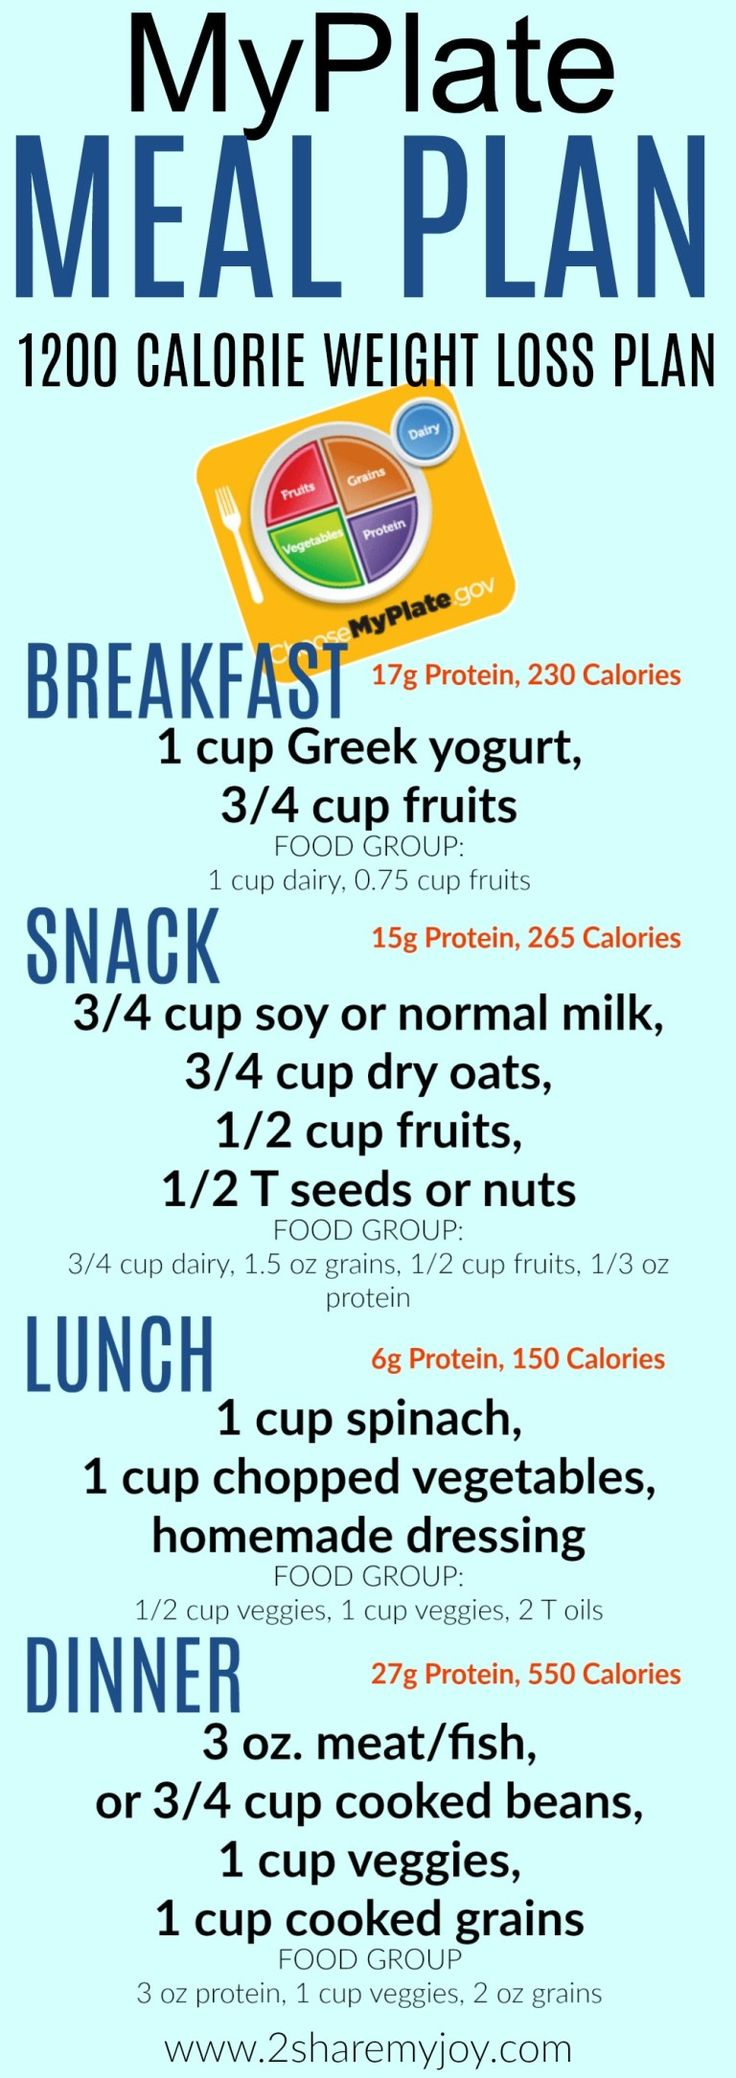 158de952436999008787979b9dc6d191 myplate meal ideas for healthy eating. 1200 calorie meal plan to lose weight fas...